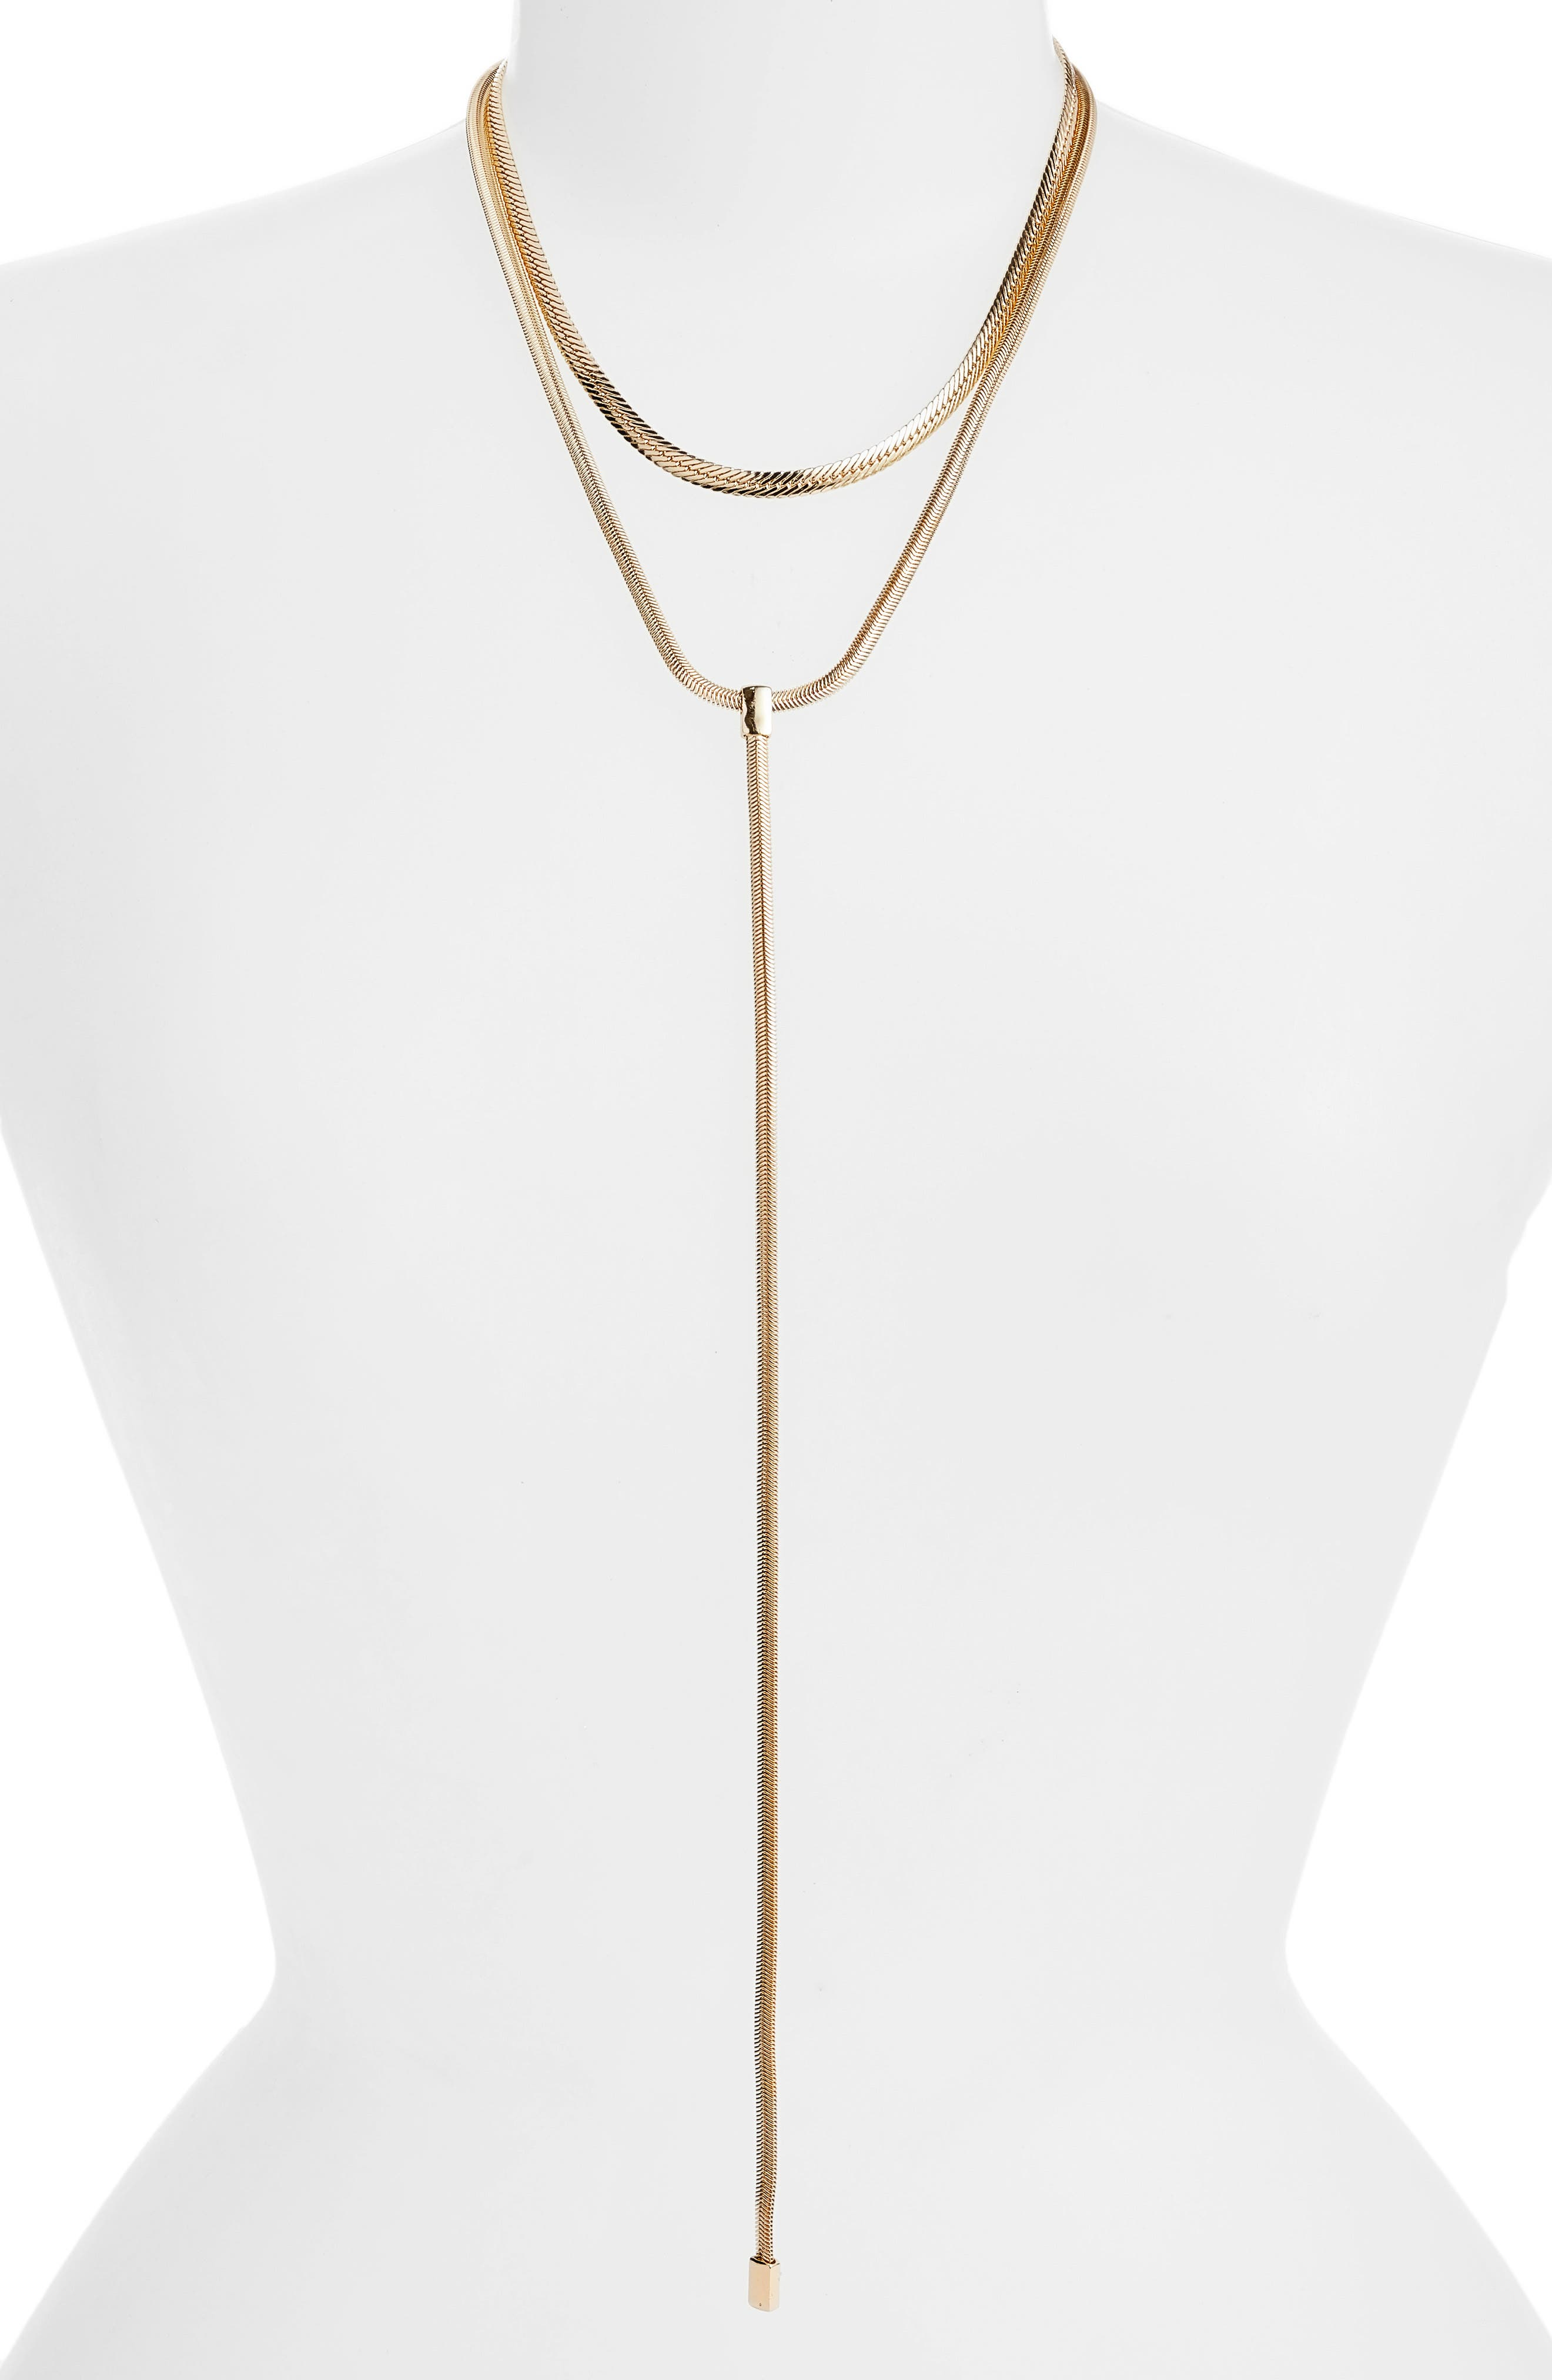 2-in-1 Snake Chain Lariat Necklace,                         Main,                         color, GOLD